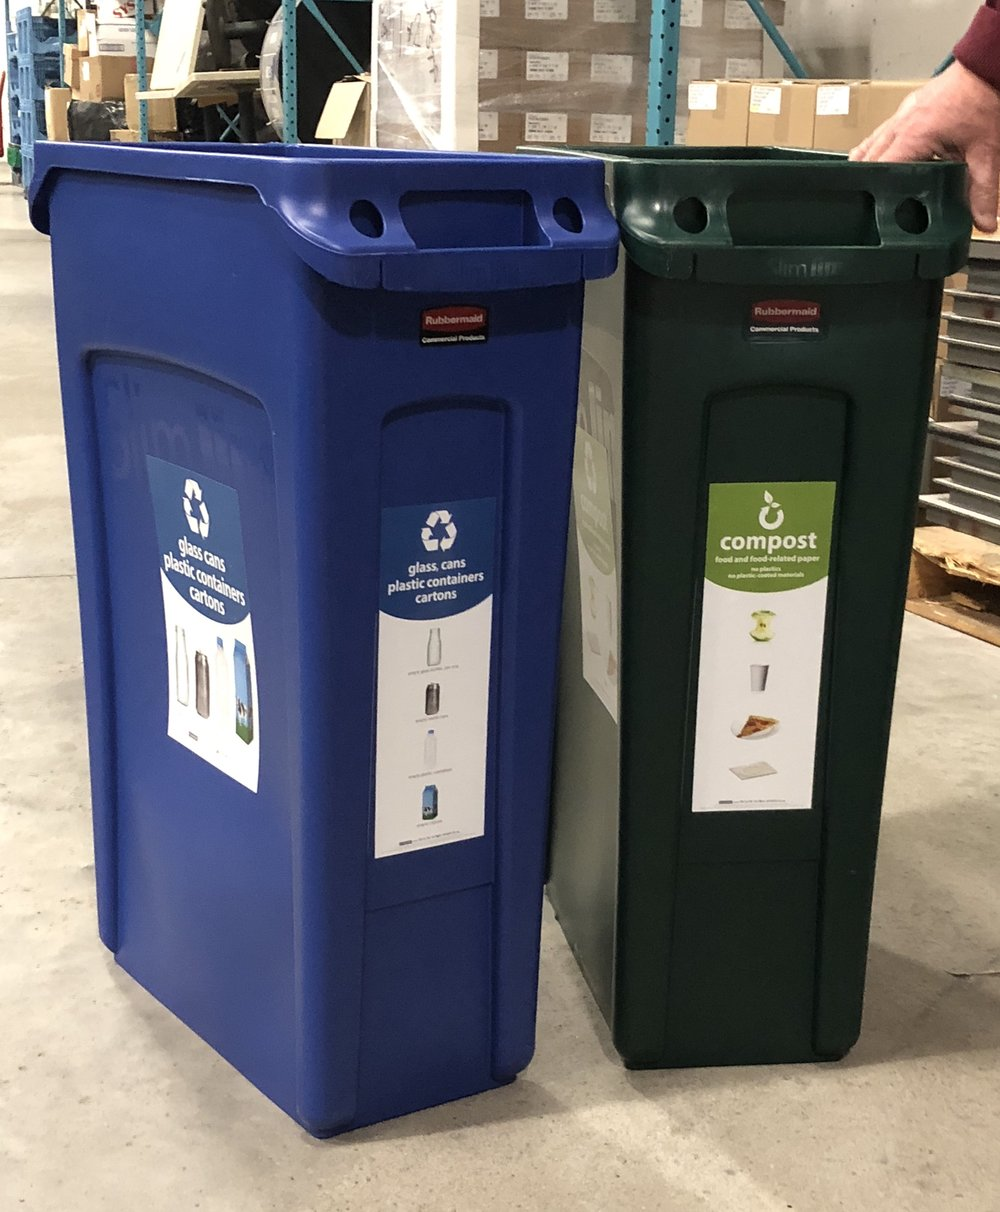 Example of Recycle Across America's standardized signage in use. These signs are used at U.S. Bank Stadium, MSP Airport, the MN State Fair, throughout the National Park System and countless other locations across the country. If you fly from Orlando to JFK in New York, you'll see the same signs on the bins, which will help you #RecycleRight